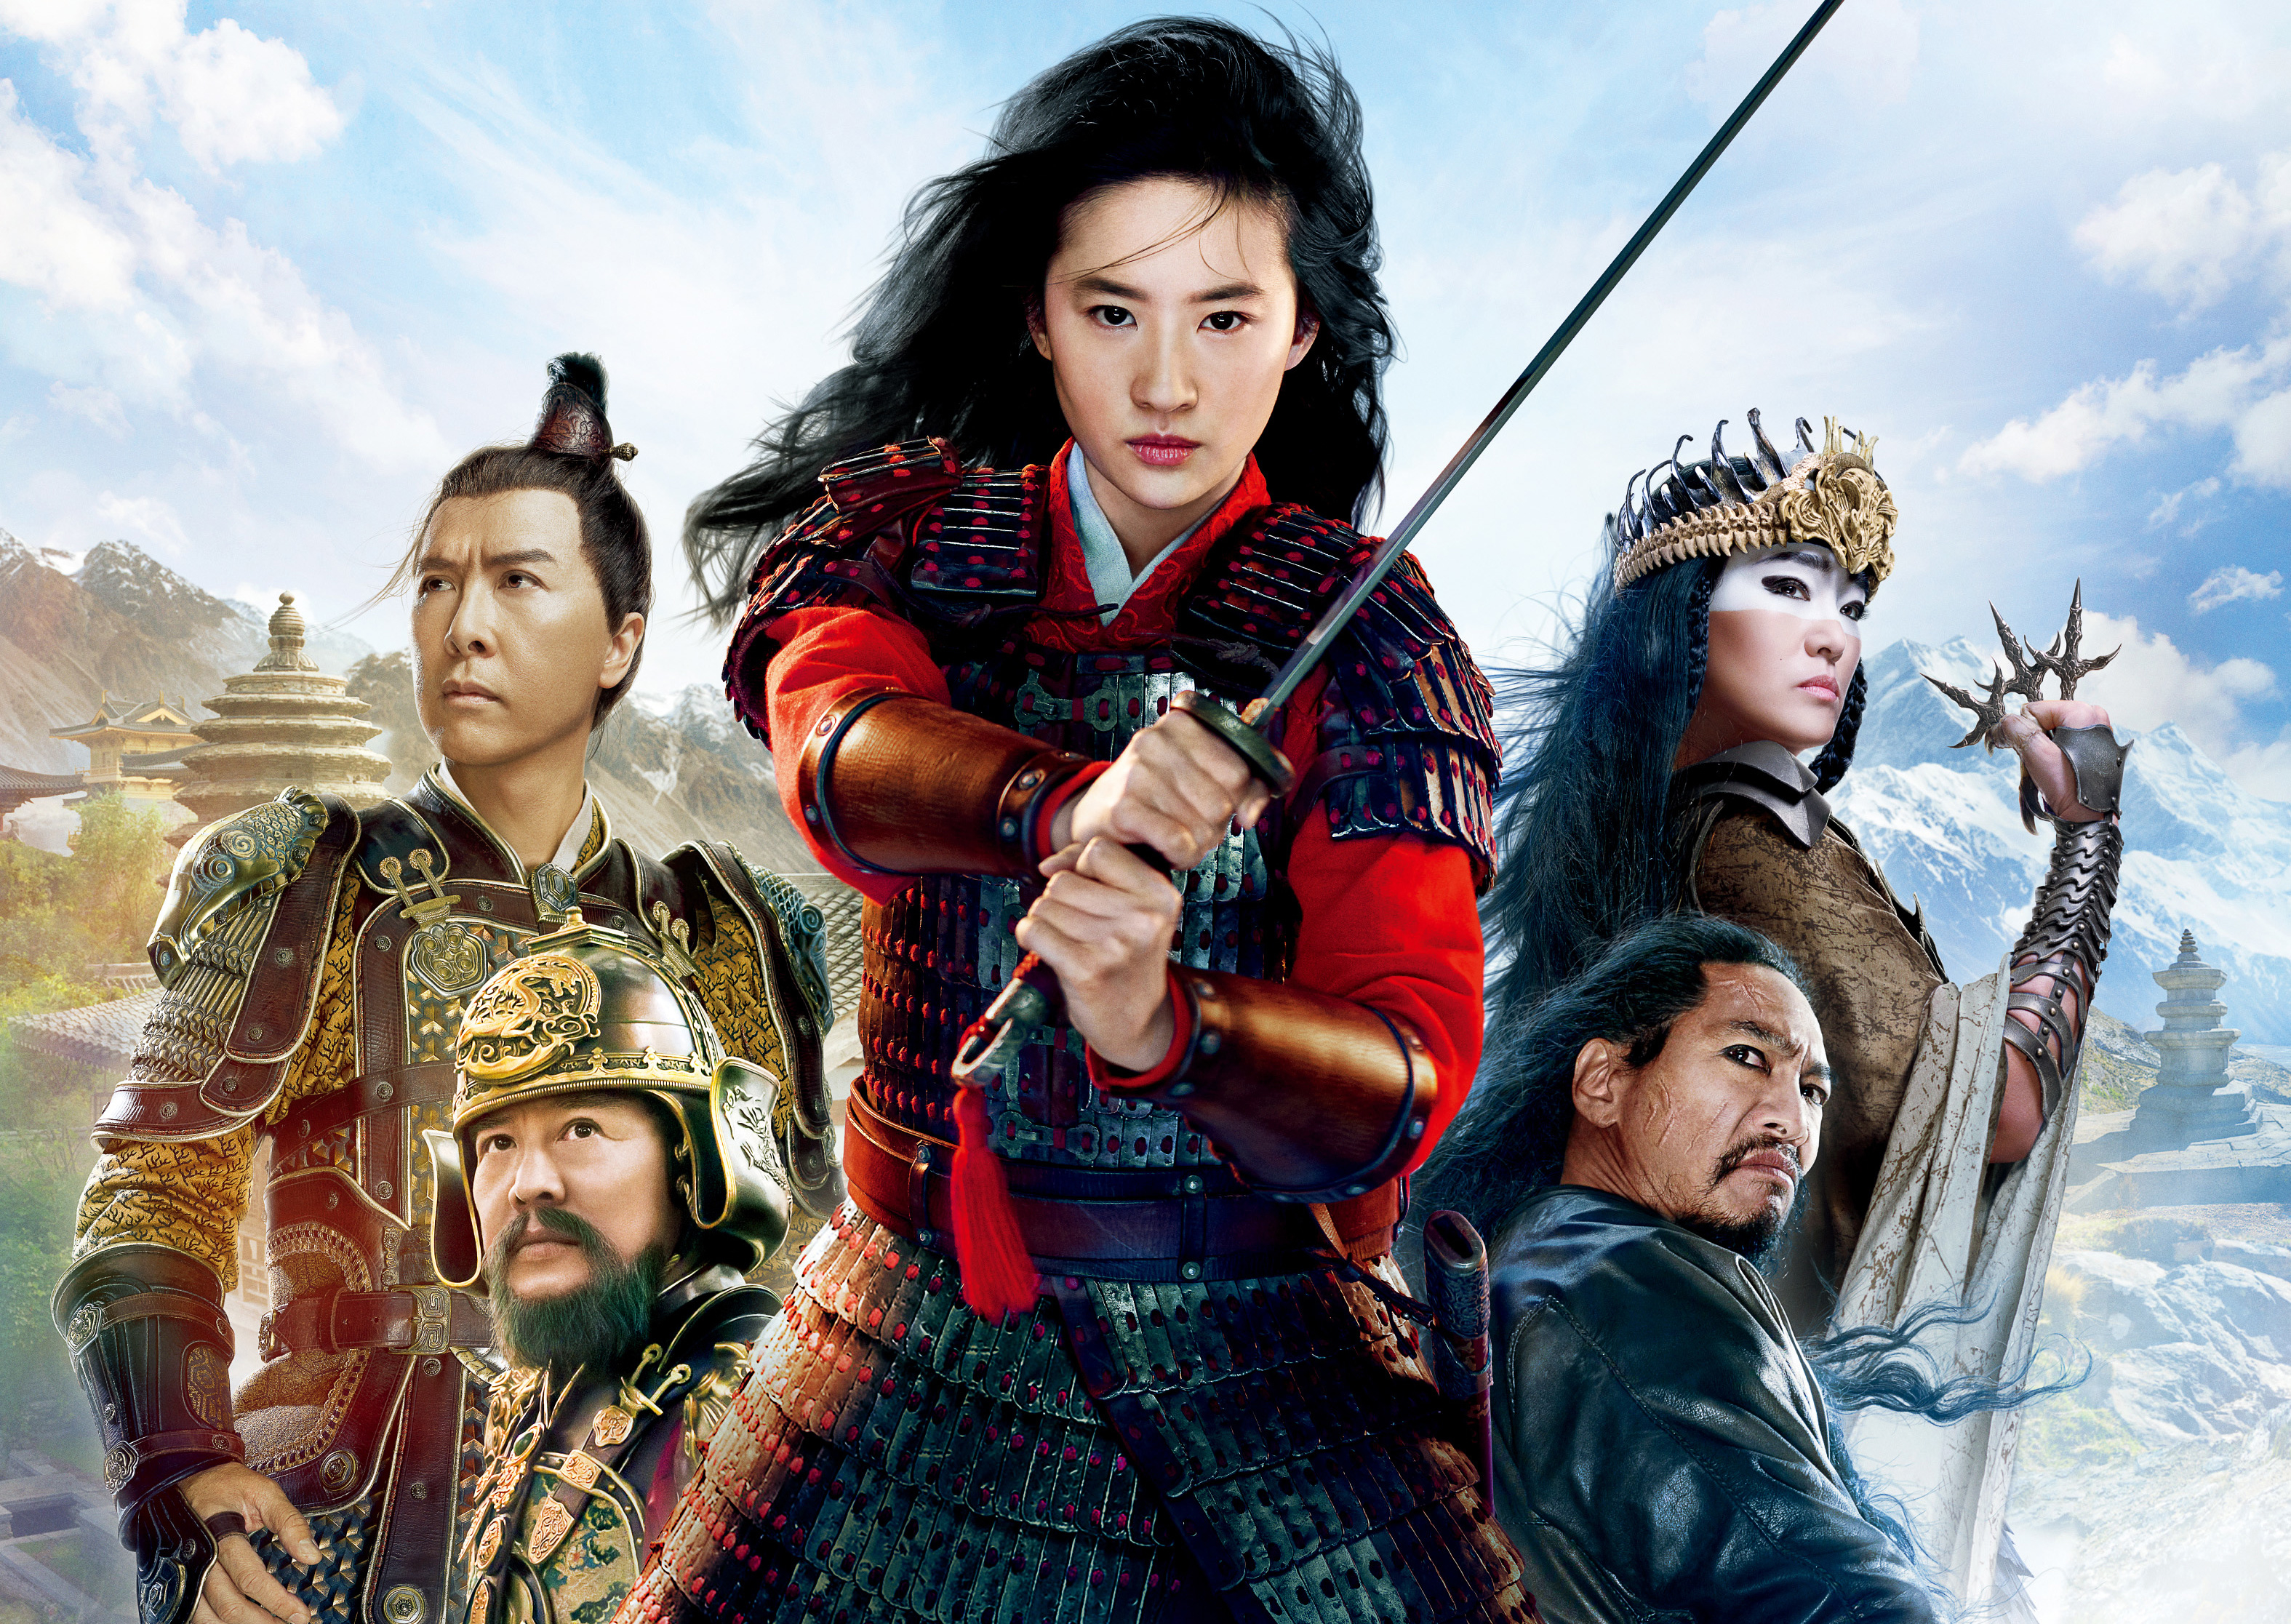 Disney Mulan Wallpaper Hd Movies 4k Wallpapers Images Photos And Background